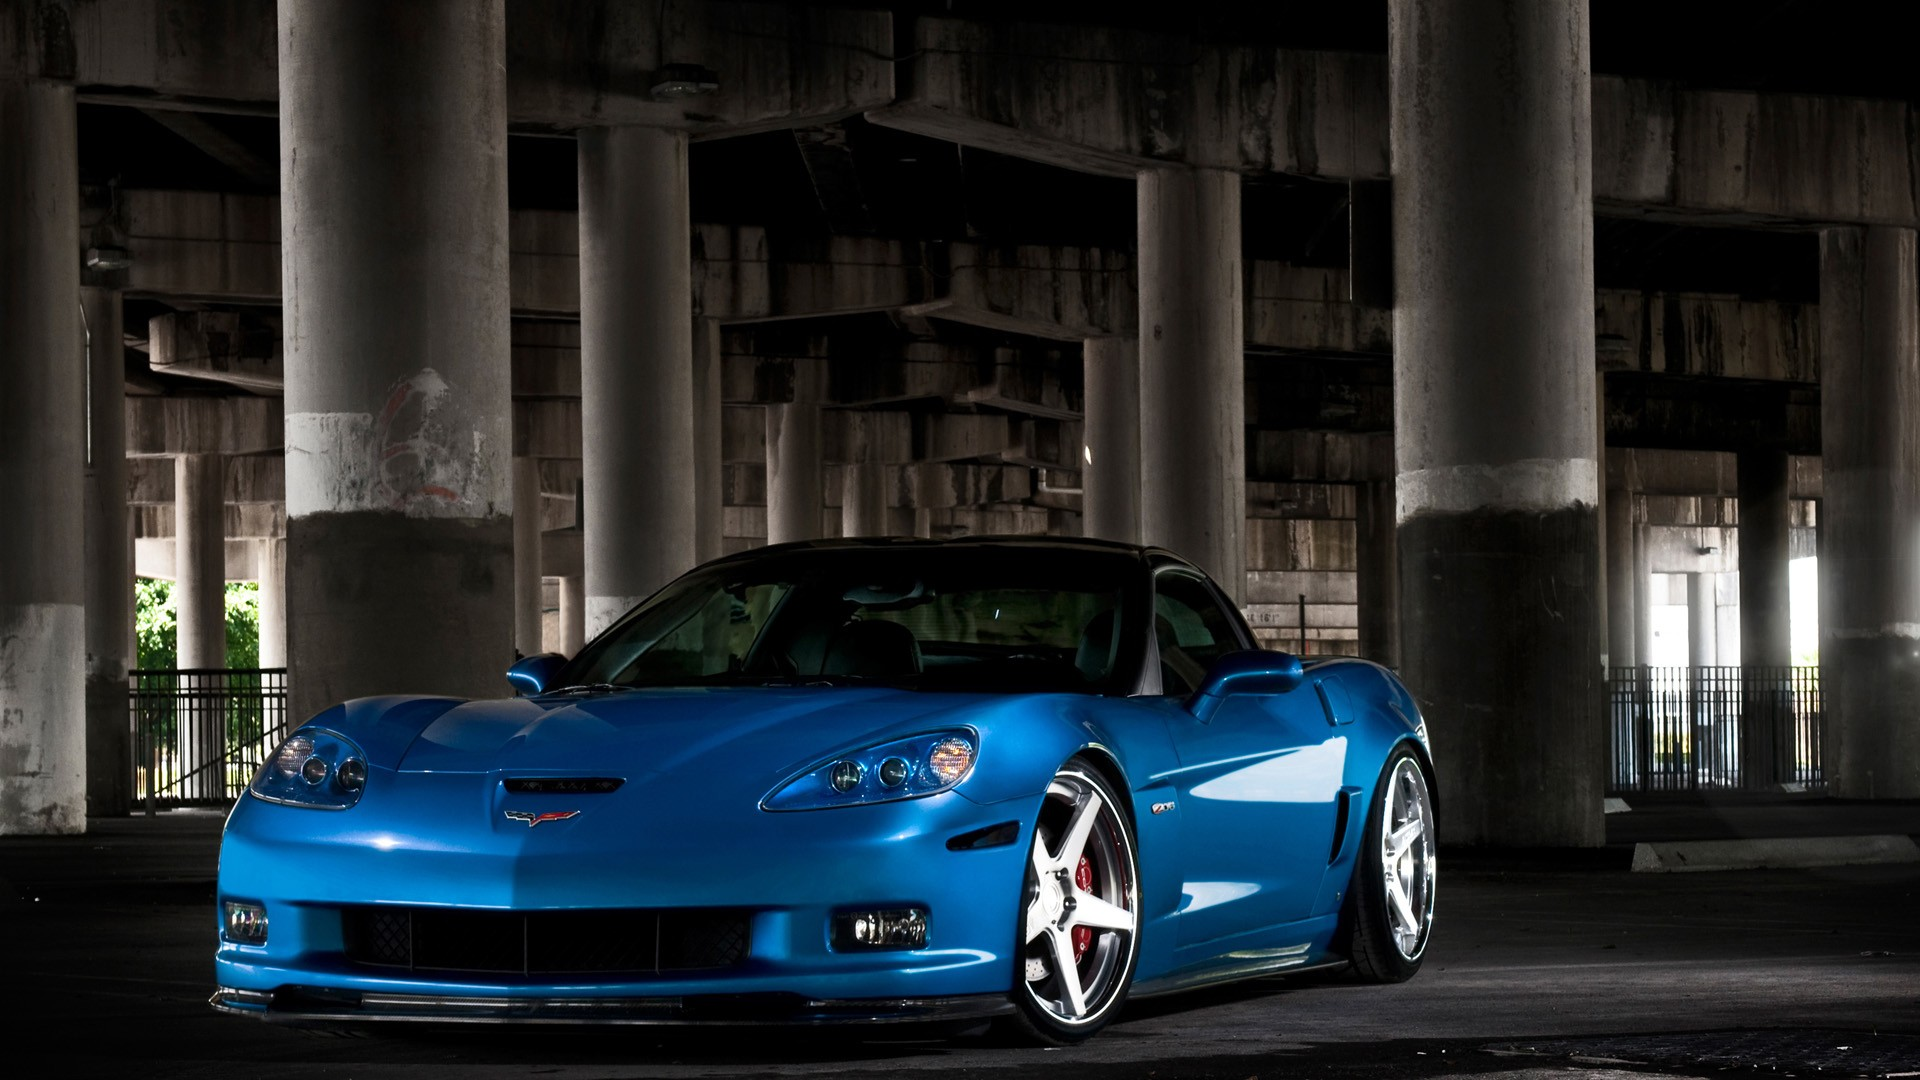 Hd Wallpaper Car Widescreen Chevrolet Corvette C6 Zr1 Car Wallpapers Hd Wallpapers